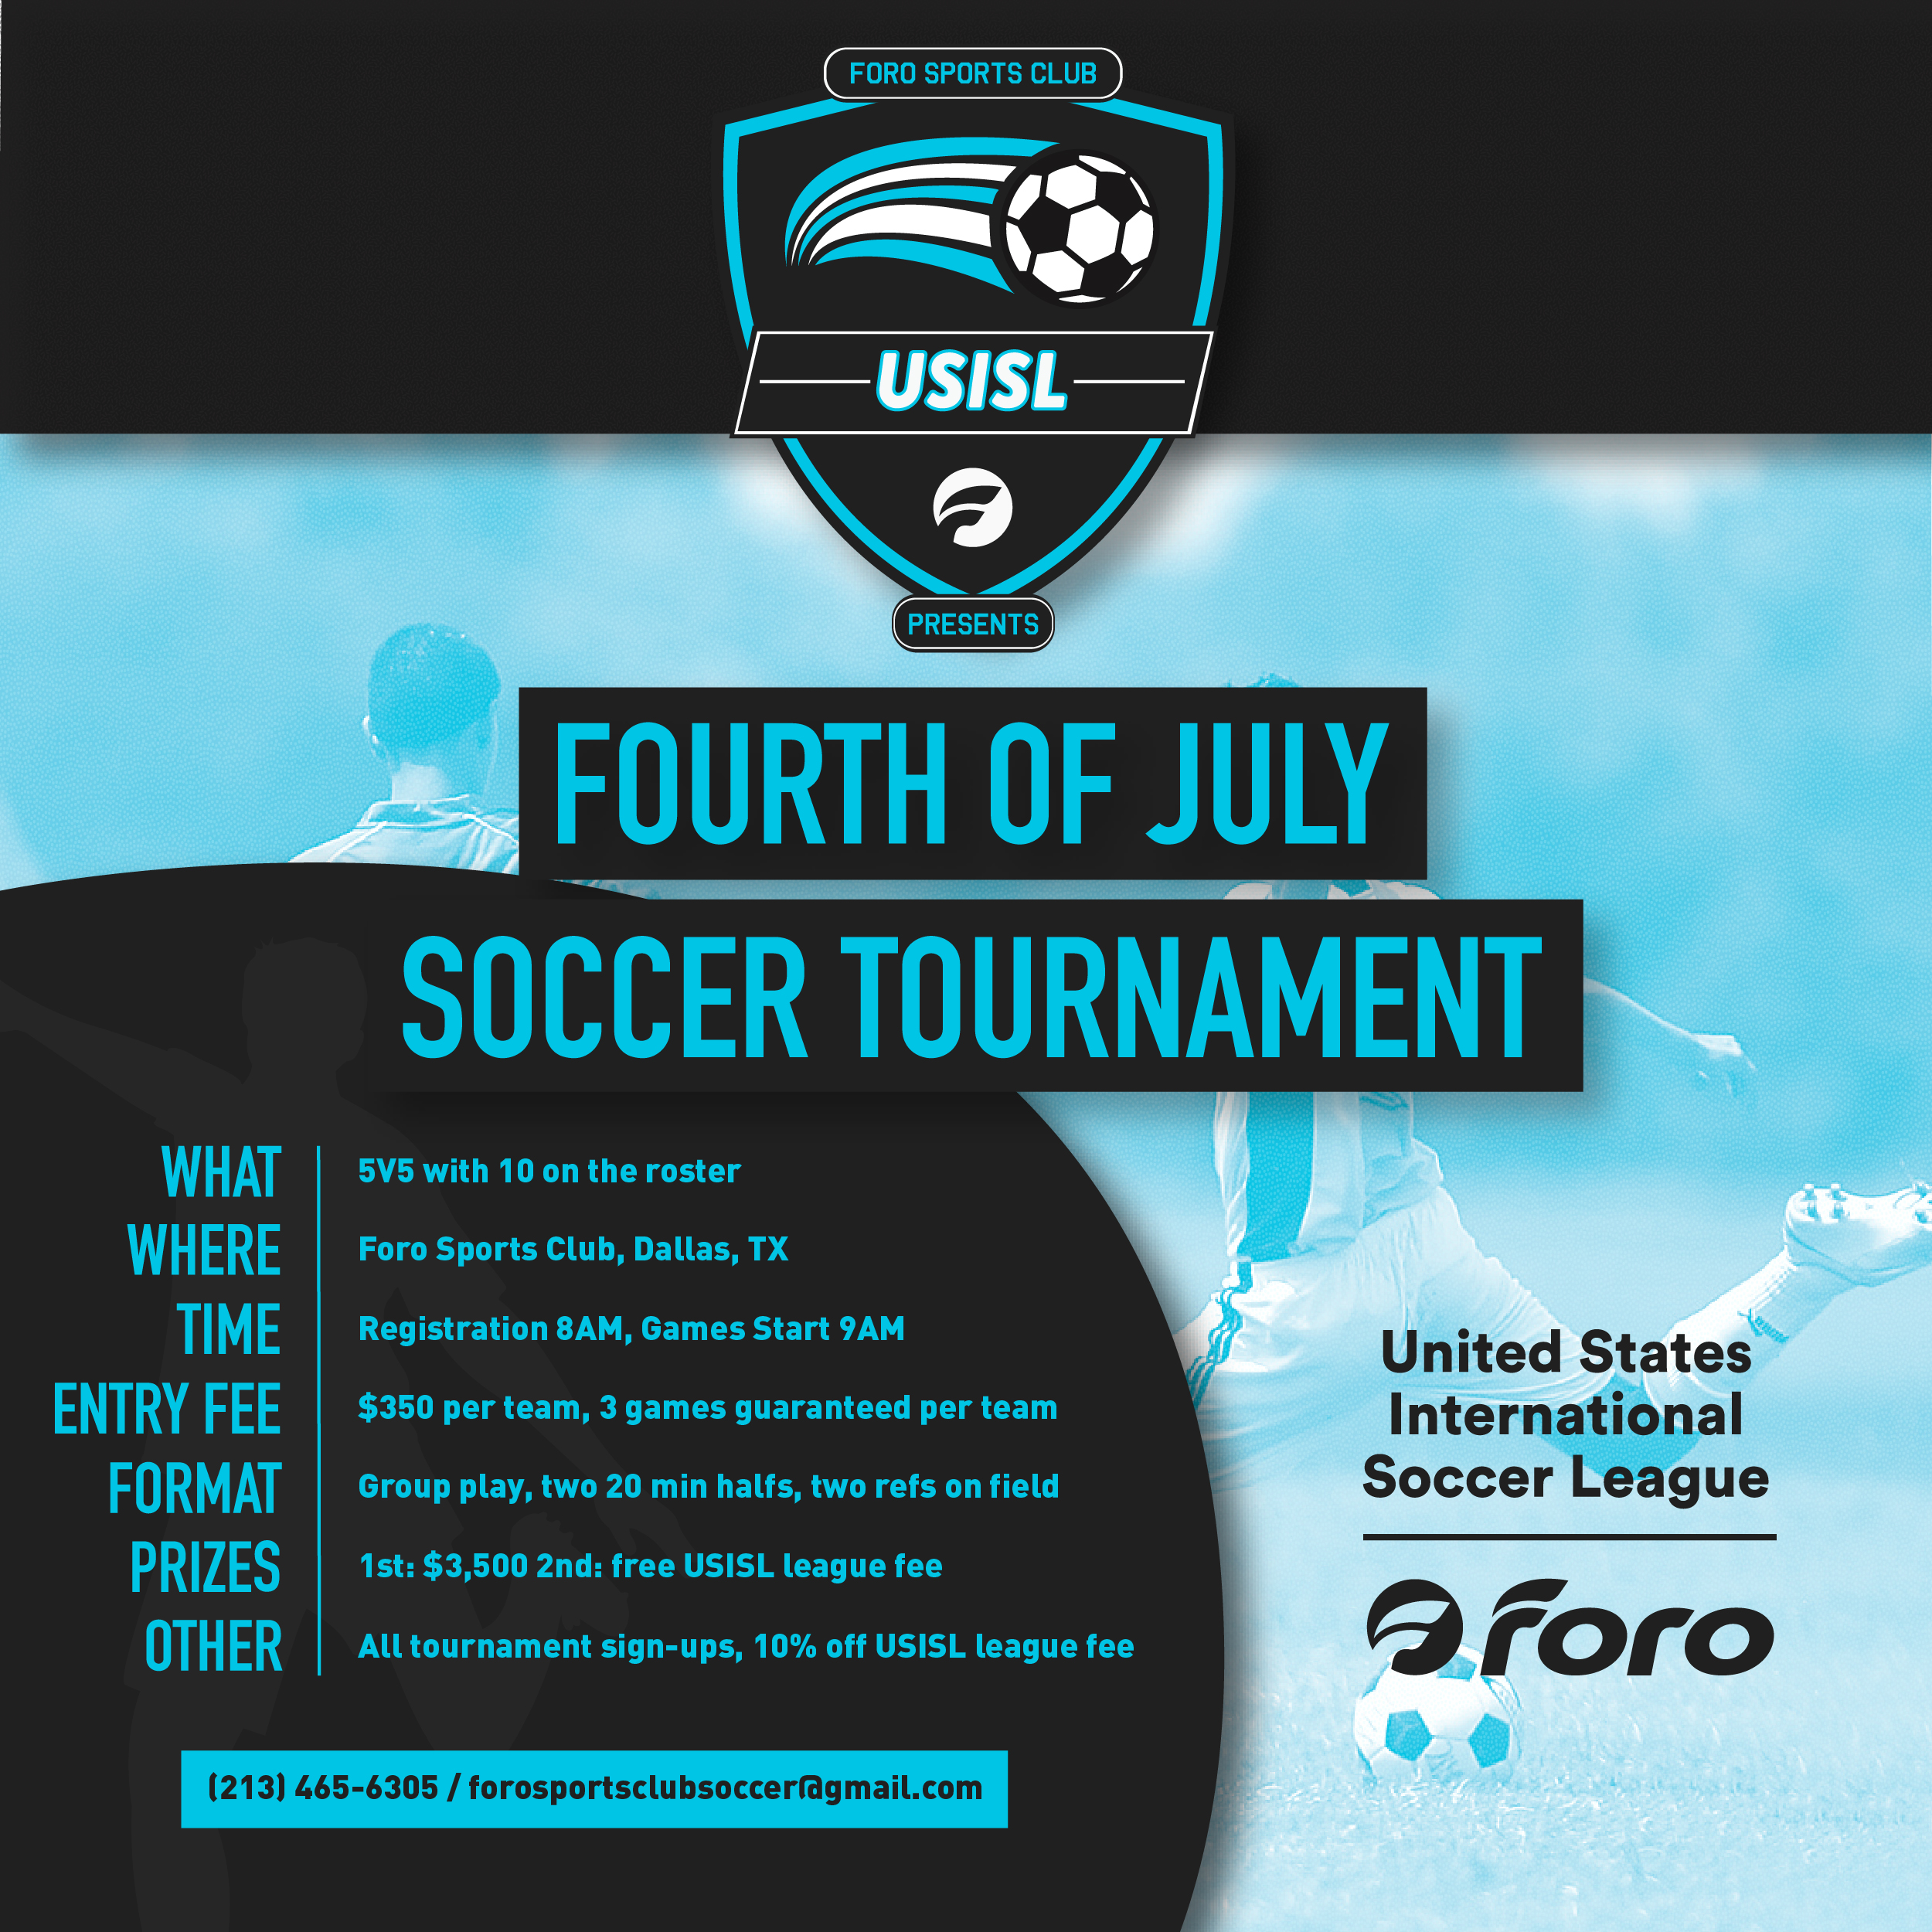 FOURTH OF JULY 5V5 TOURNEY - Sign-up now for the USISL Soccer Tournament! You can register your team online at the link below. Games start at 9AM. Grand Prize: 3,500Sponsors: Hooters, Red Bull, T-MobileContact: Jesse Barrientos at (213) 465-6305 or soccerr@forosportsclub.comFacebook Event